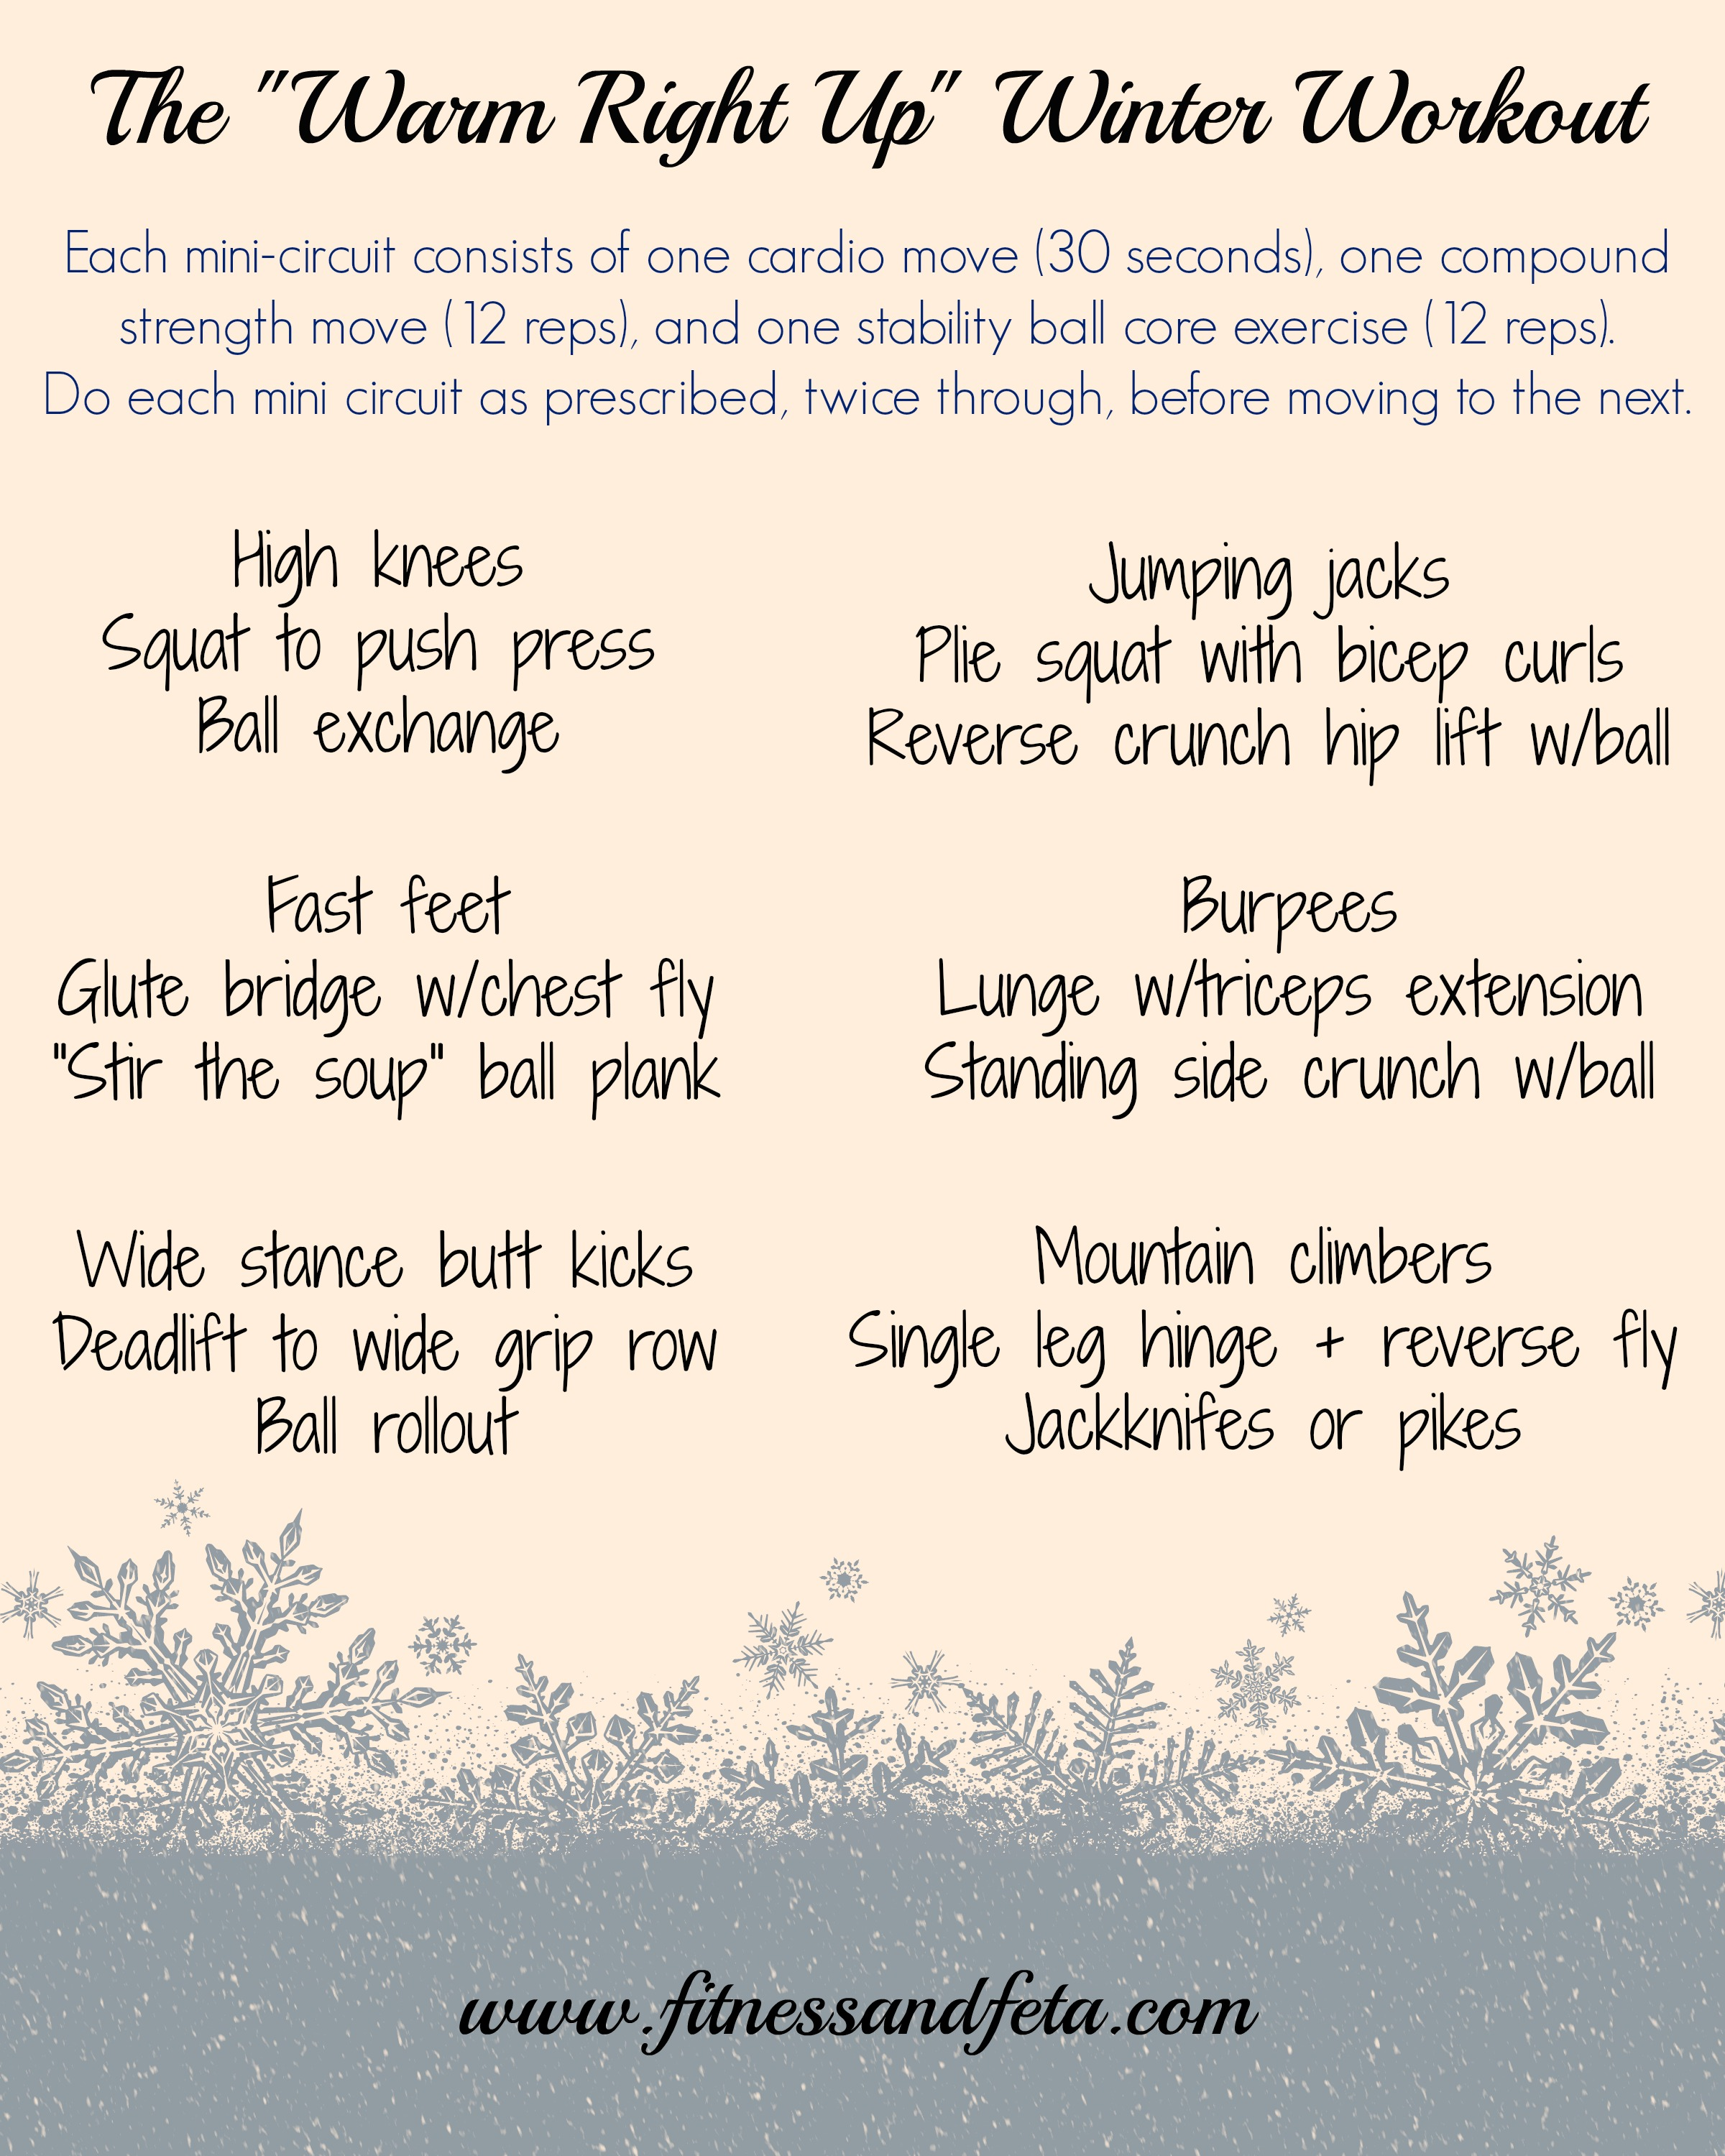 Warm Right Up Winter Workout